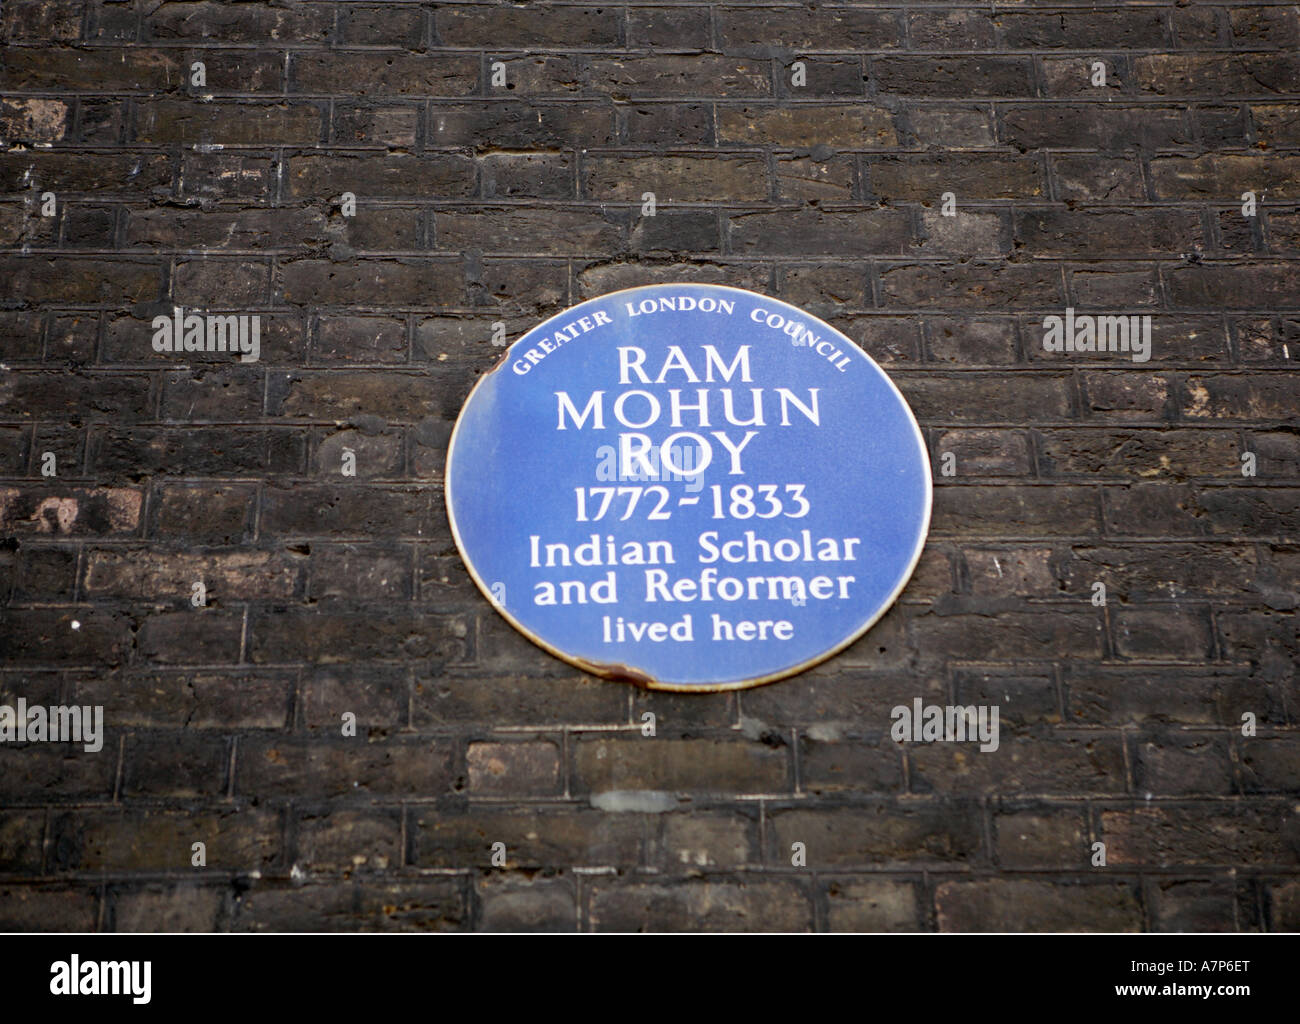 Plaque at Bedford Square WC1 London city England UK reading Greater London Council Ram Mohun Roy - Stock Image